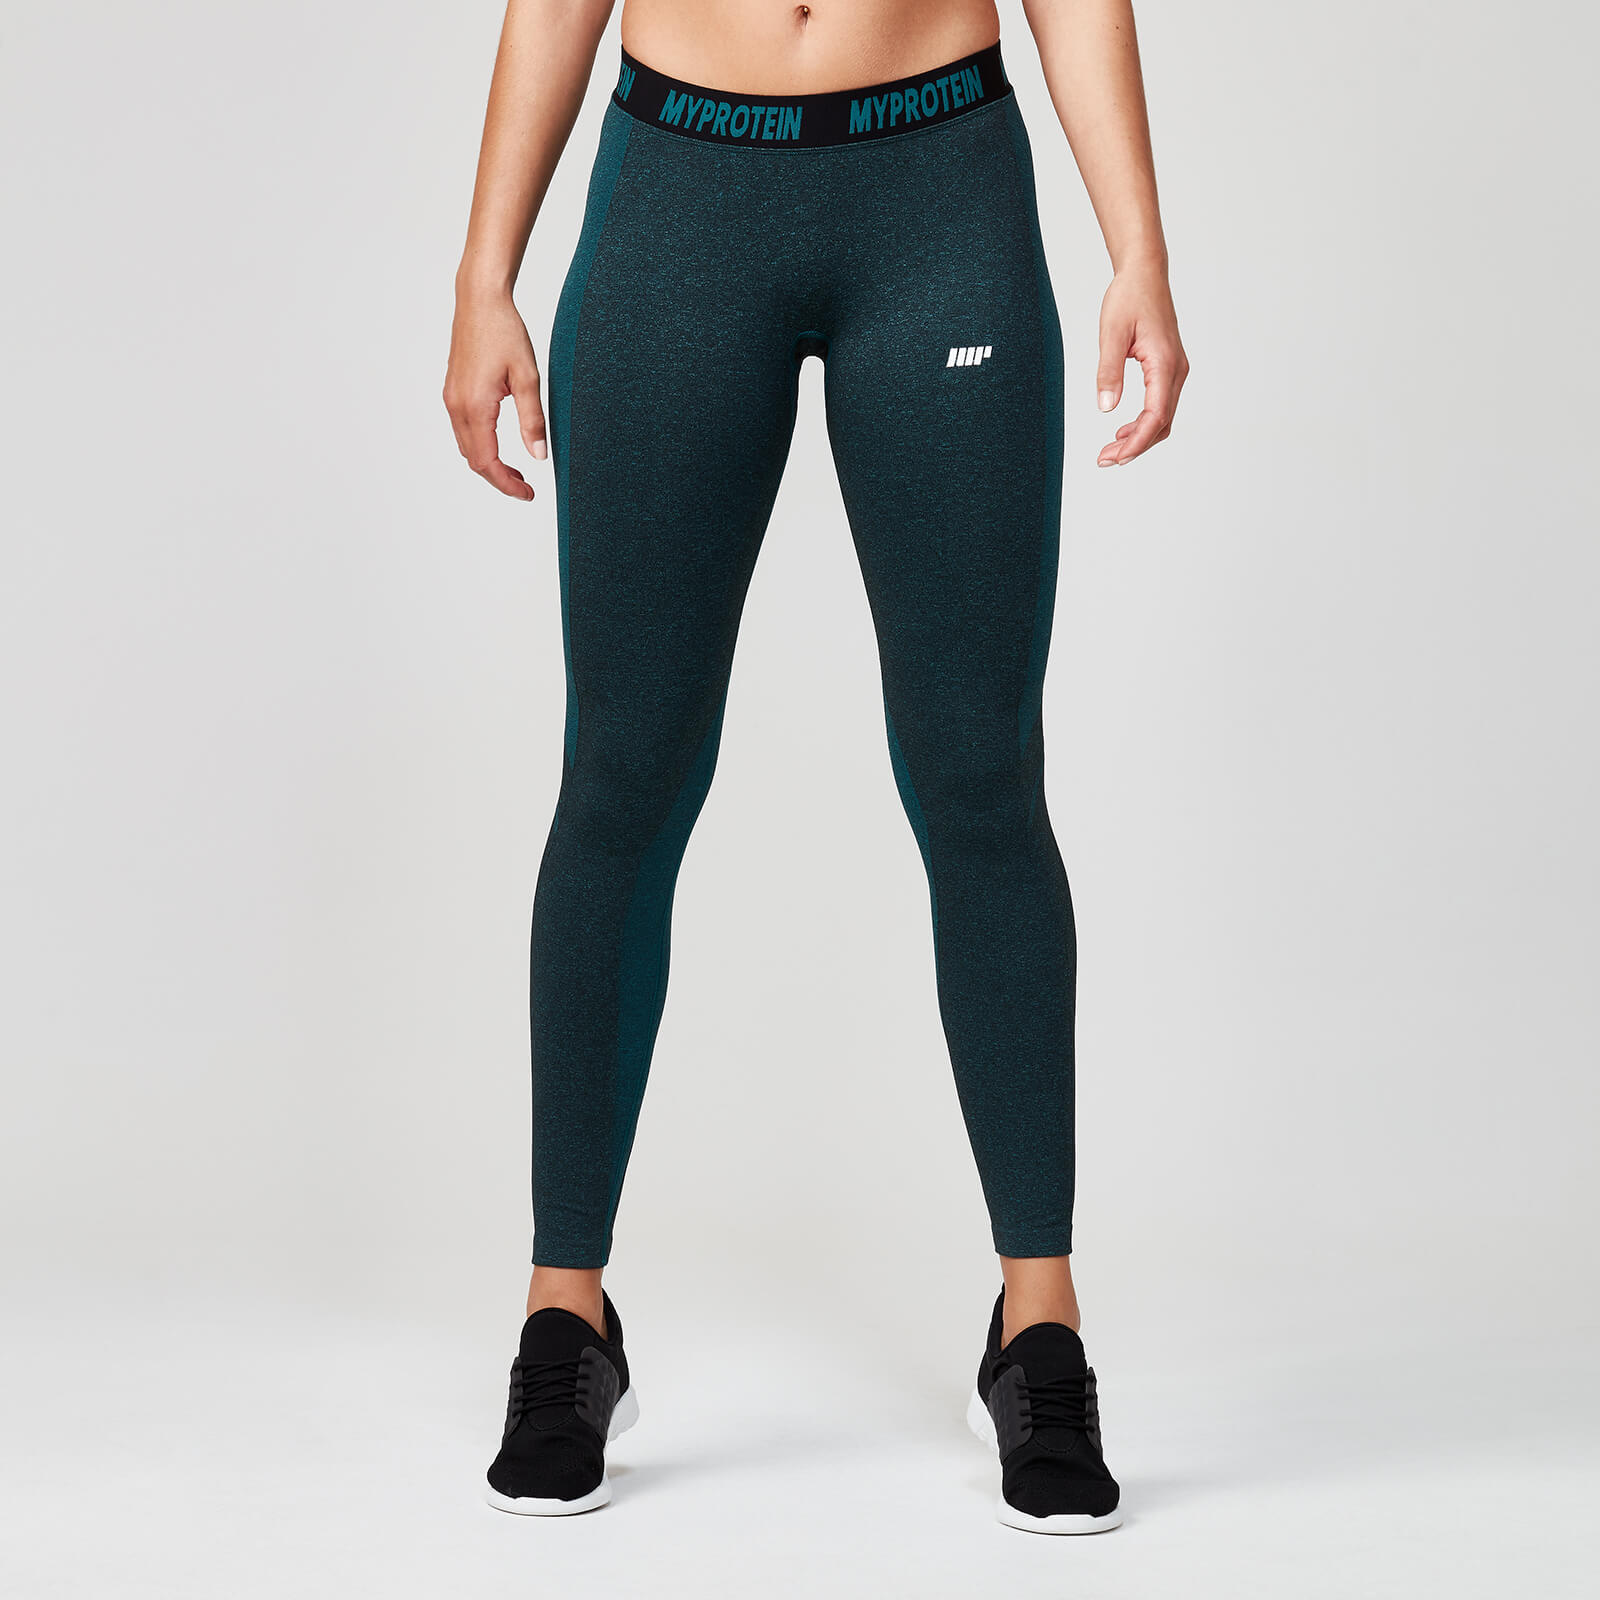 Myprotein Seamless Leggings - Marble Green - XS